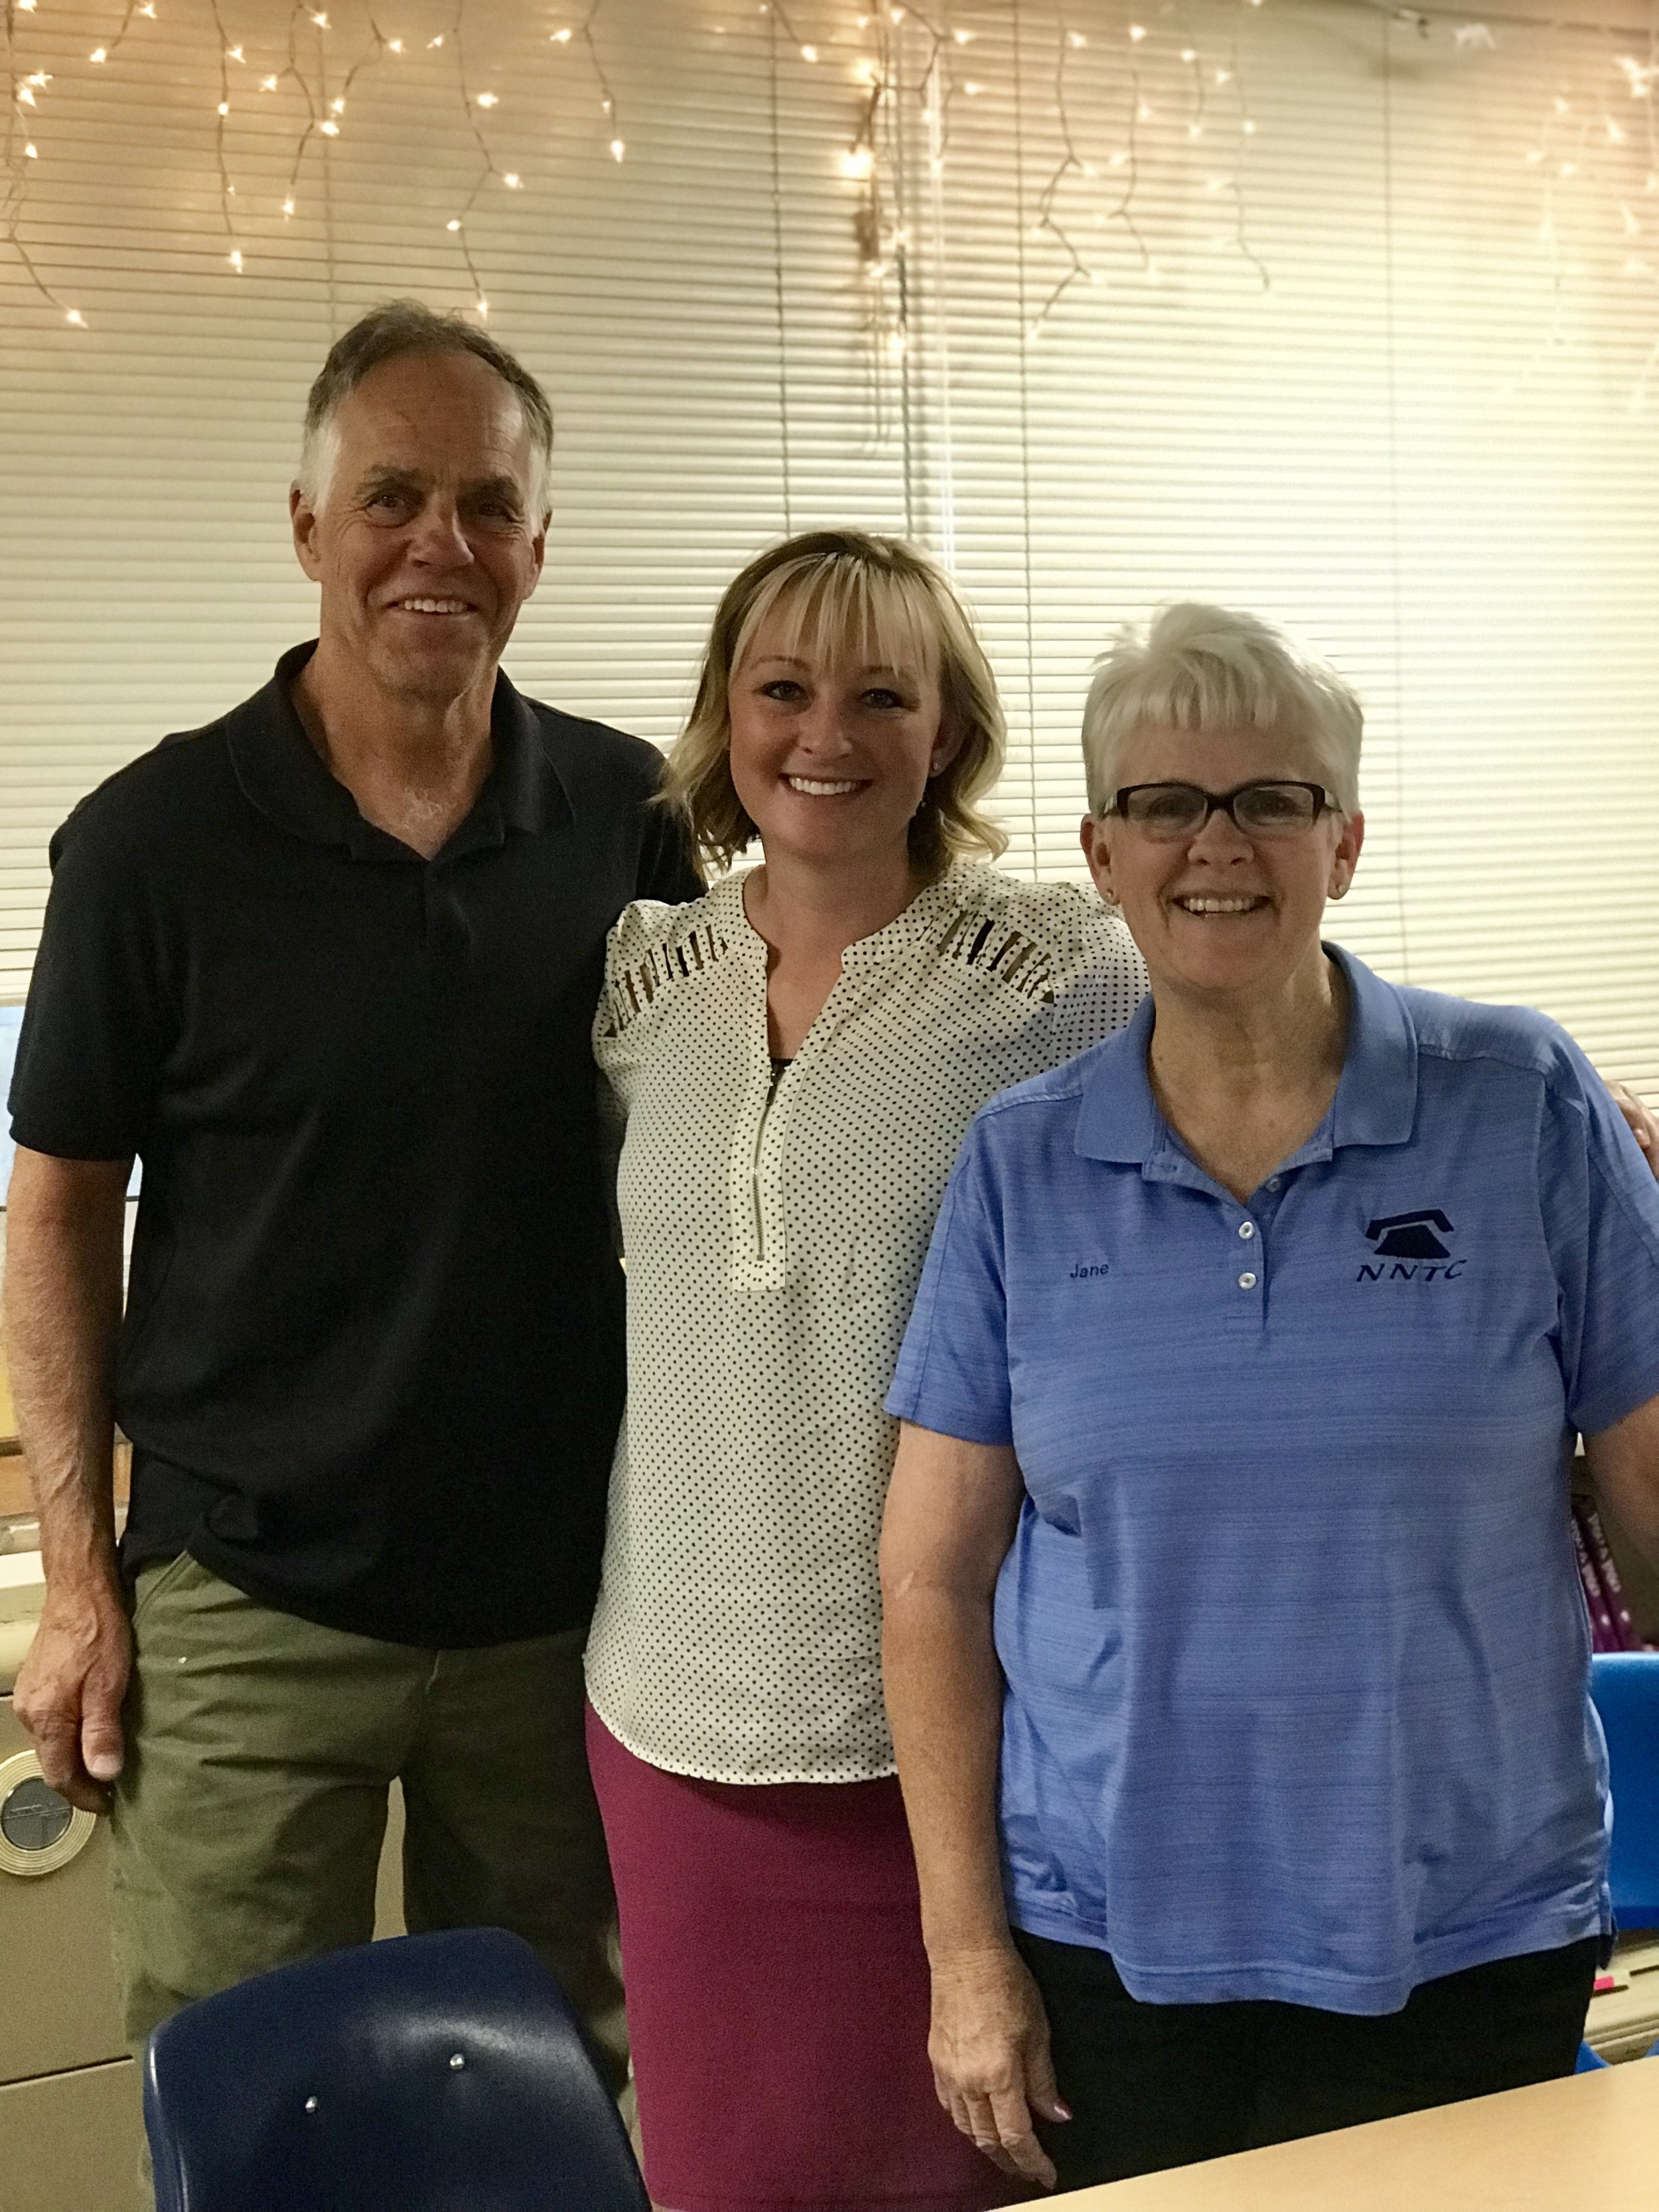 Paul, Sara, and Jane visiting Nulca High School to interview students.